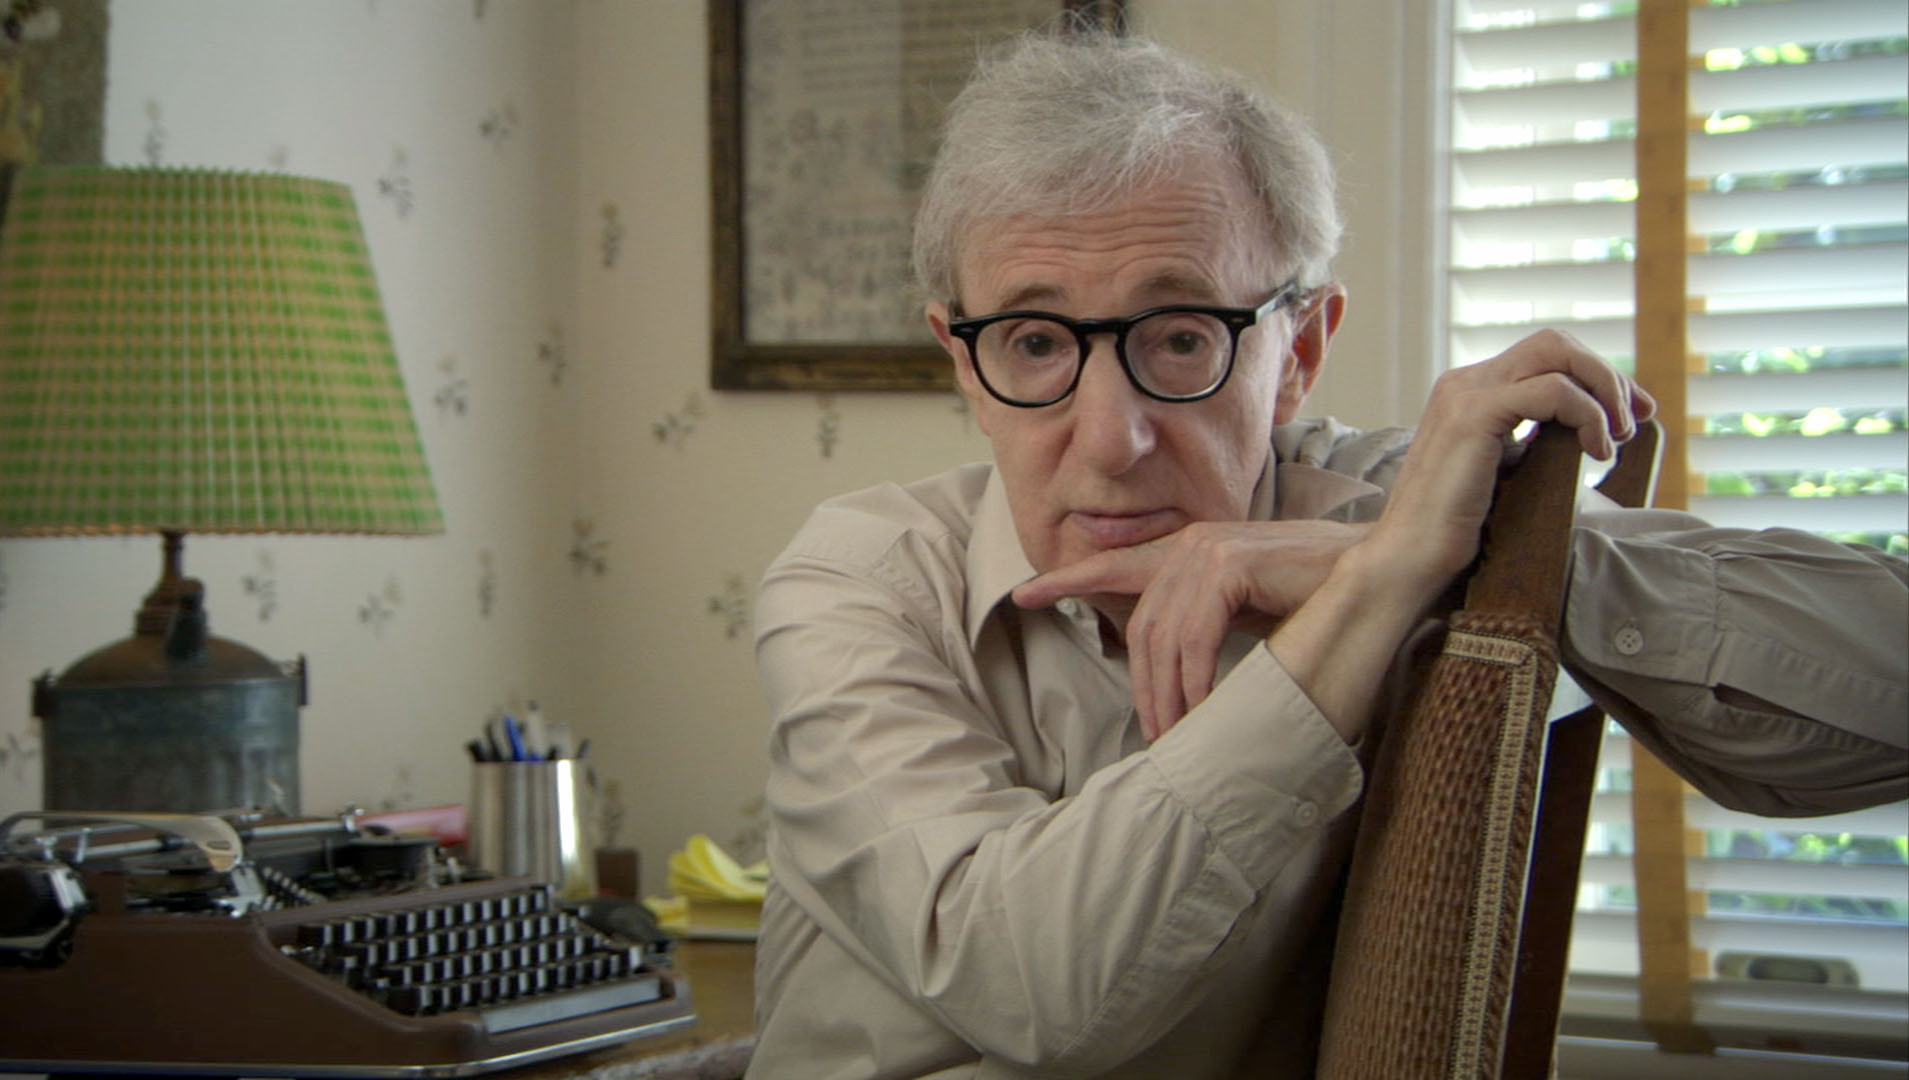 Typecast: 'Woody Allen: A Documentary' traces the career of one of America's most prolific directors, featuring interviews with many of his stars and showing artifacts such as the typewriter he has used for 60 years. | © 2010 Mediapro, Versatil Cinema & Gravier Production, Inc.